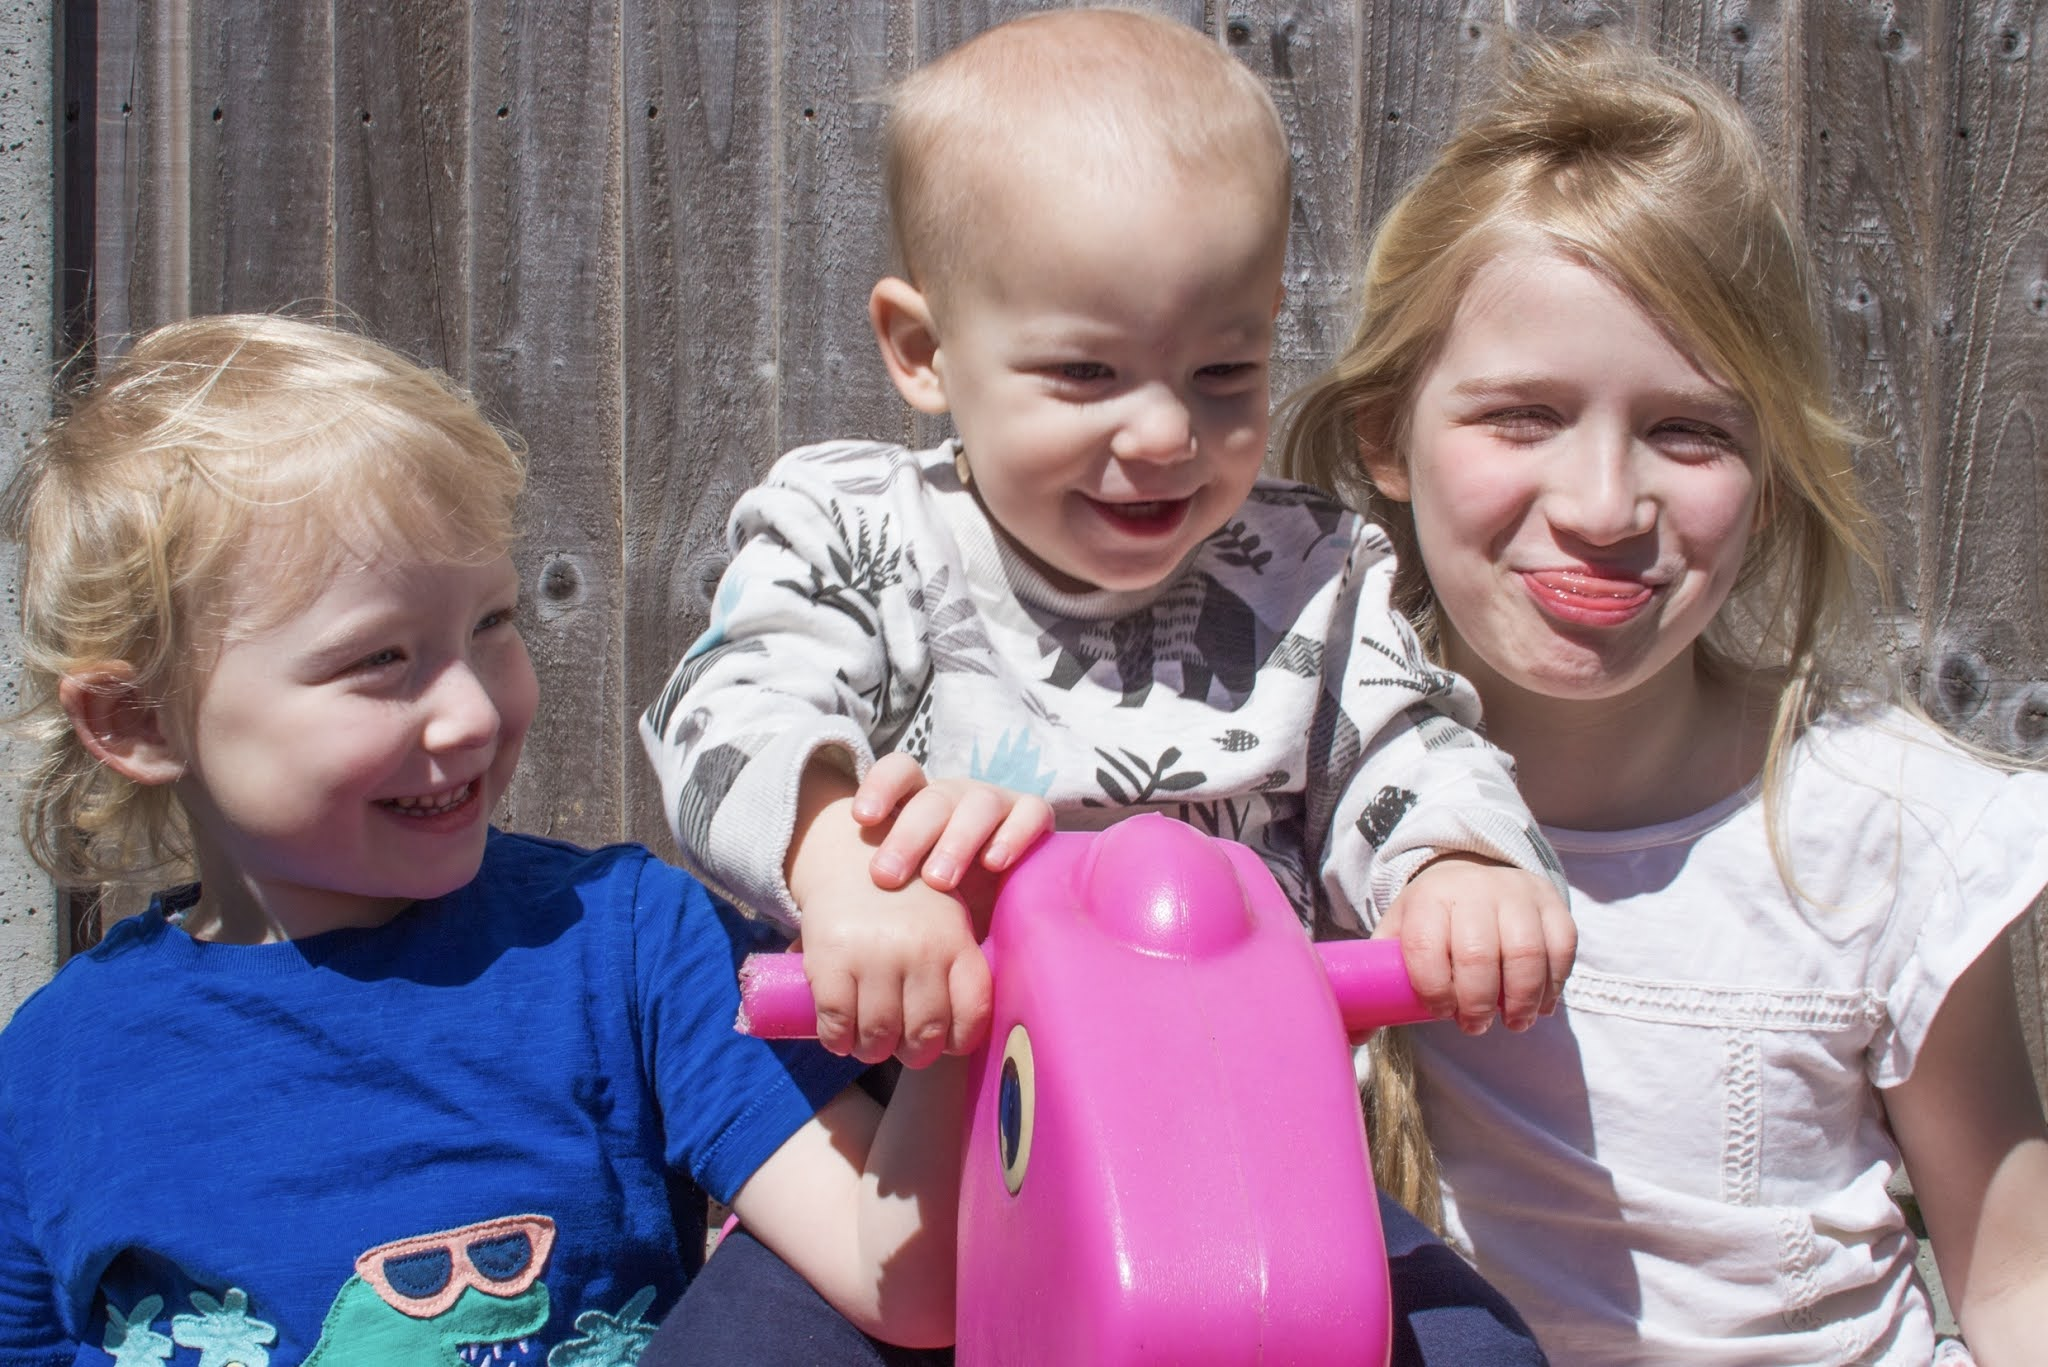 3 siblings (a baby boy and 2 girls) laughing and being silly